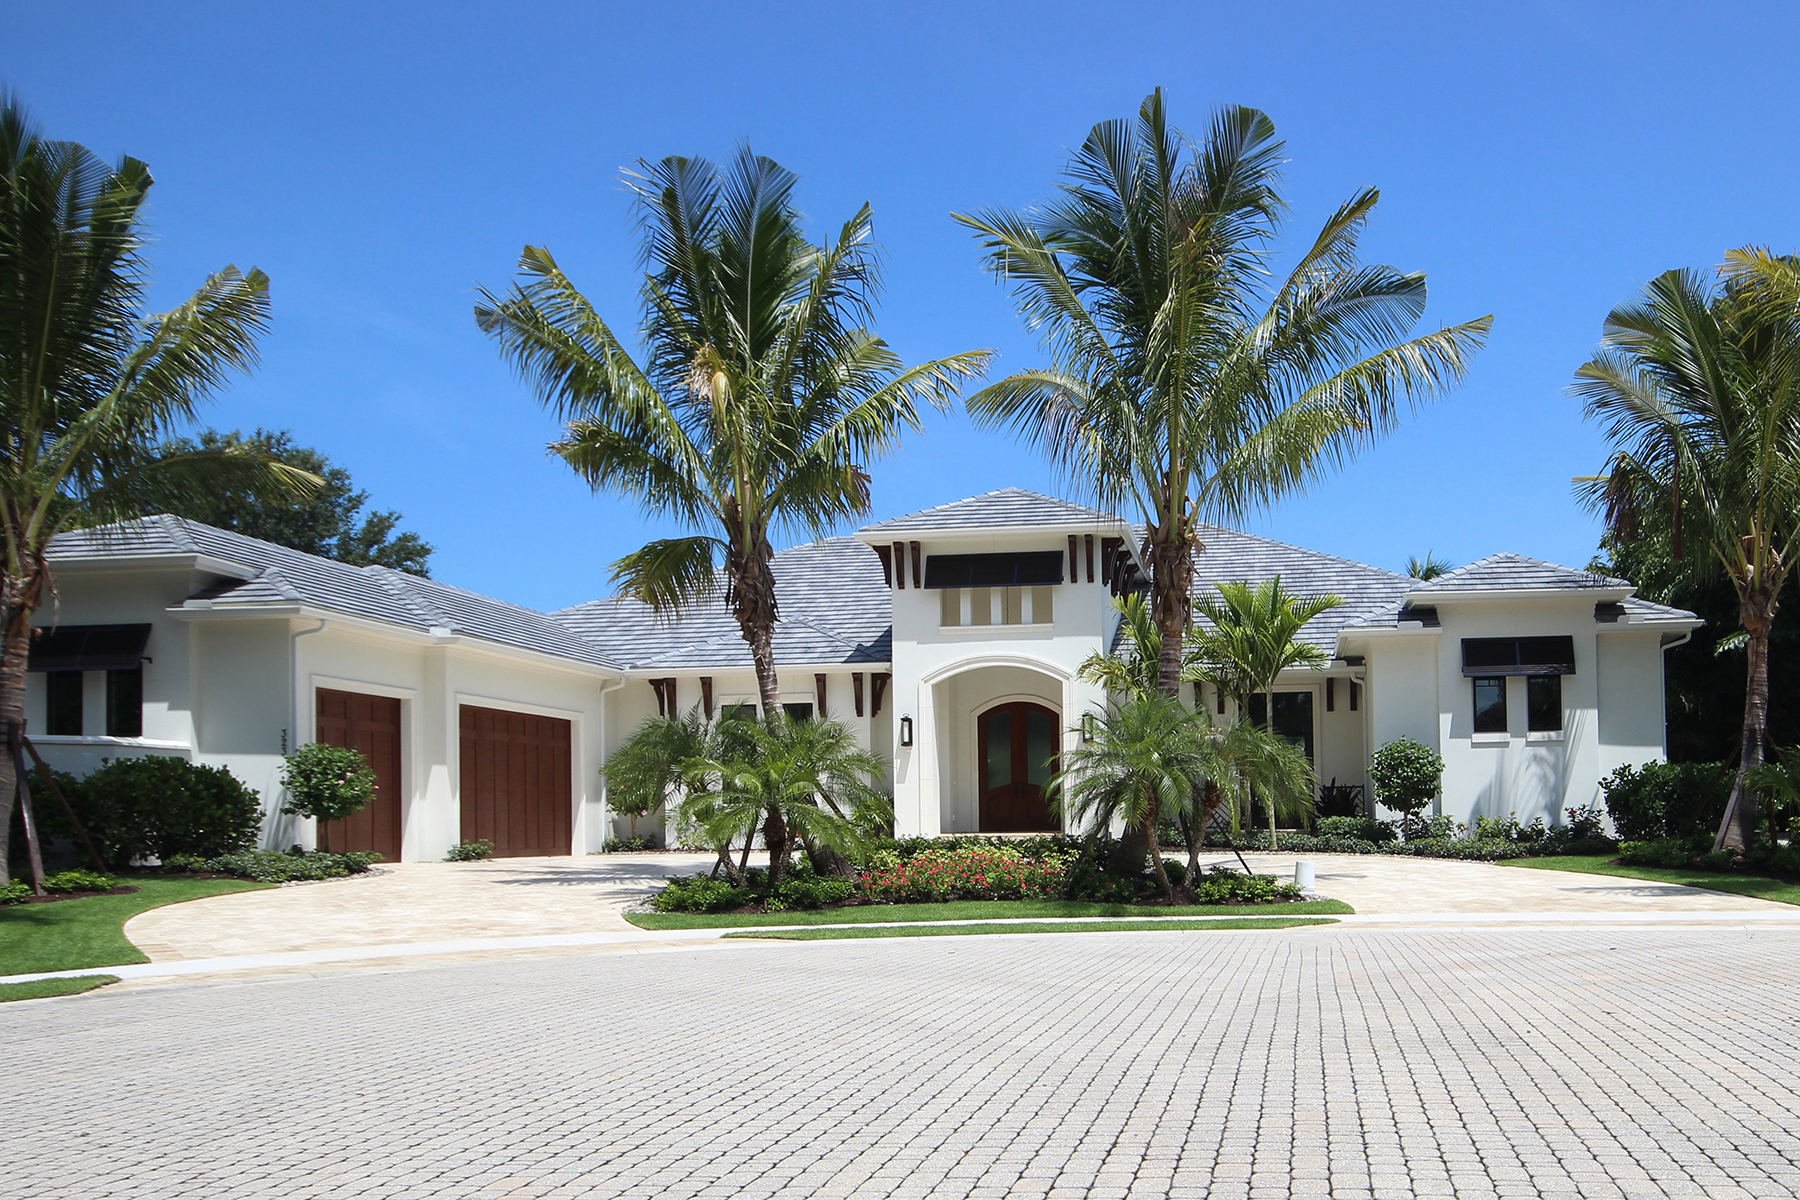 Casa Unifamiliar por un Venta en PELICAN BAY - BAY COLONY SHORES 323 Cromwell Ct Naples, Florida, 34108 Estados Unidos